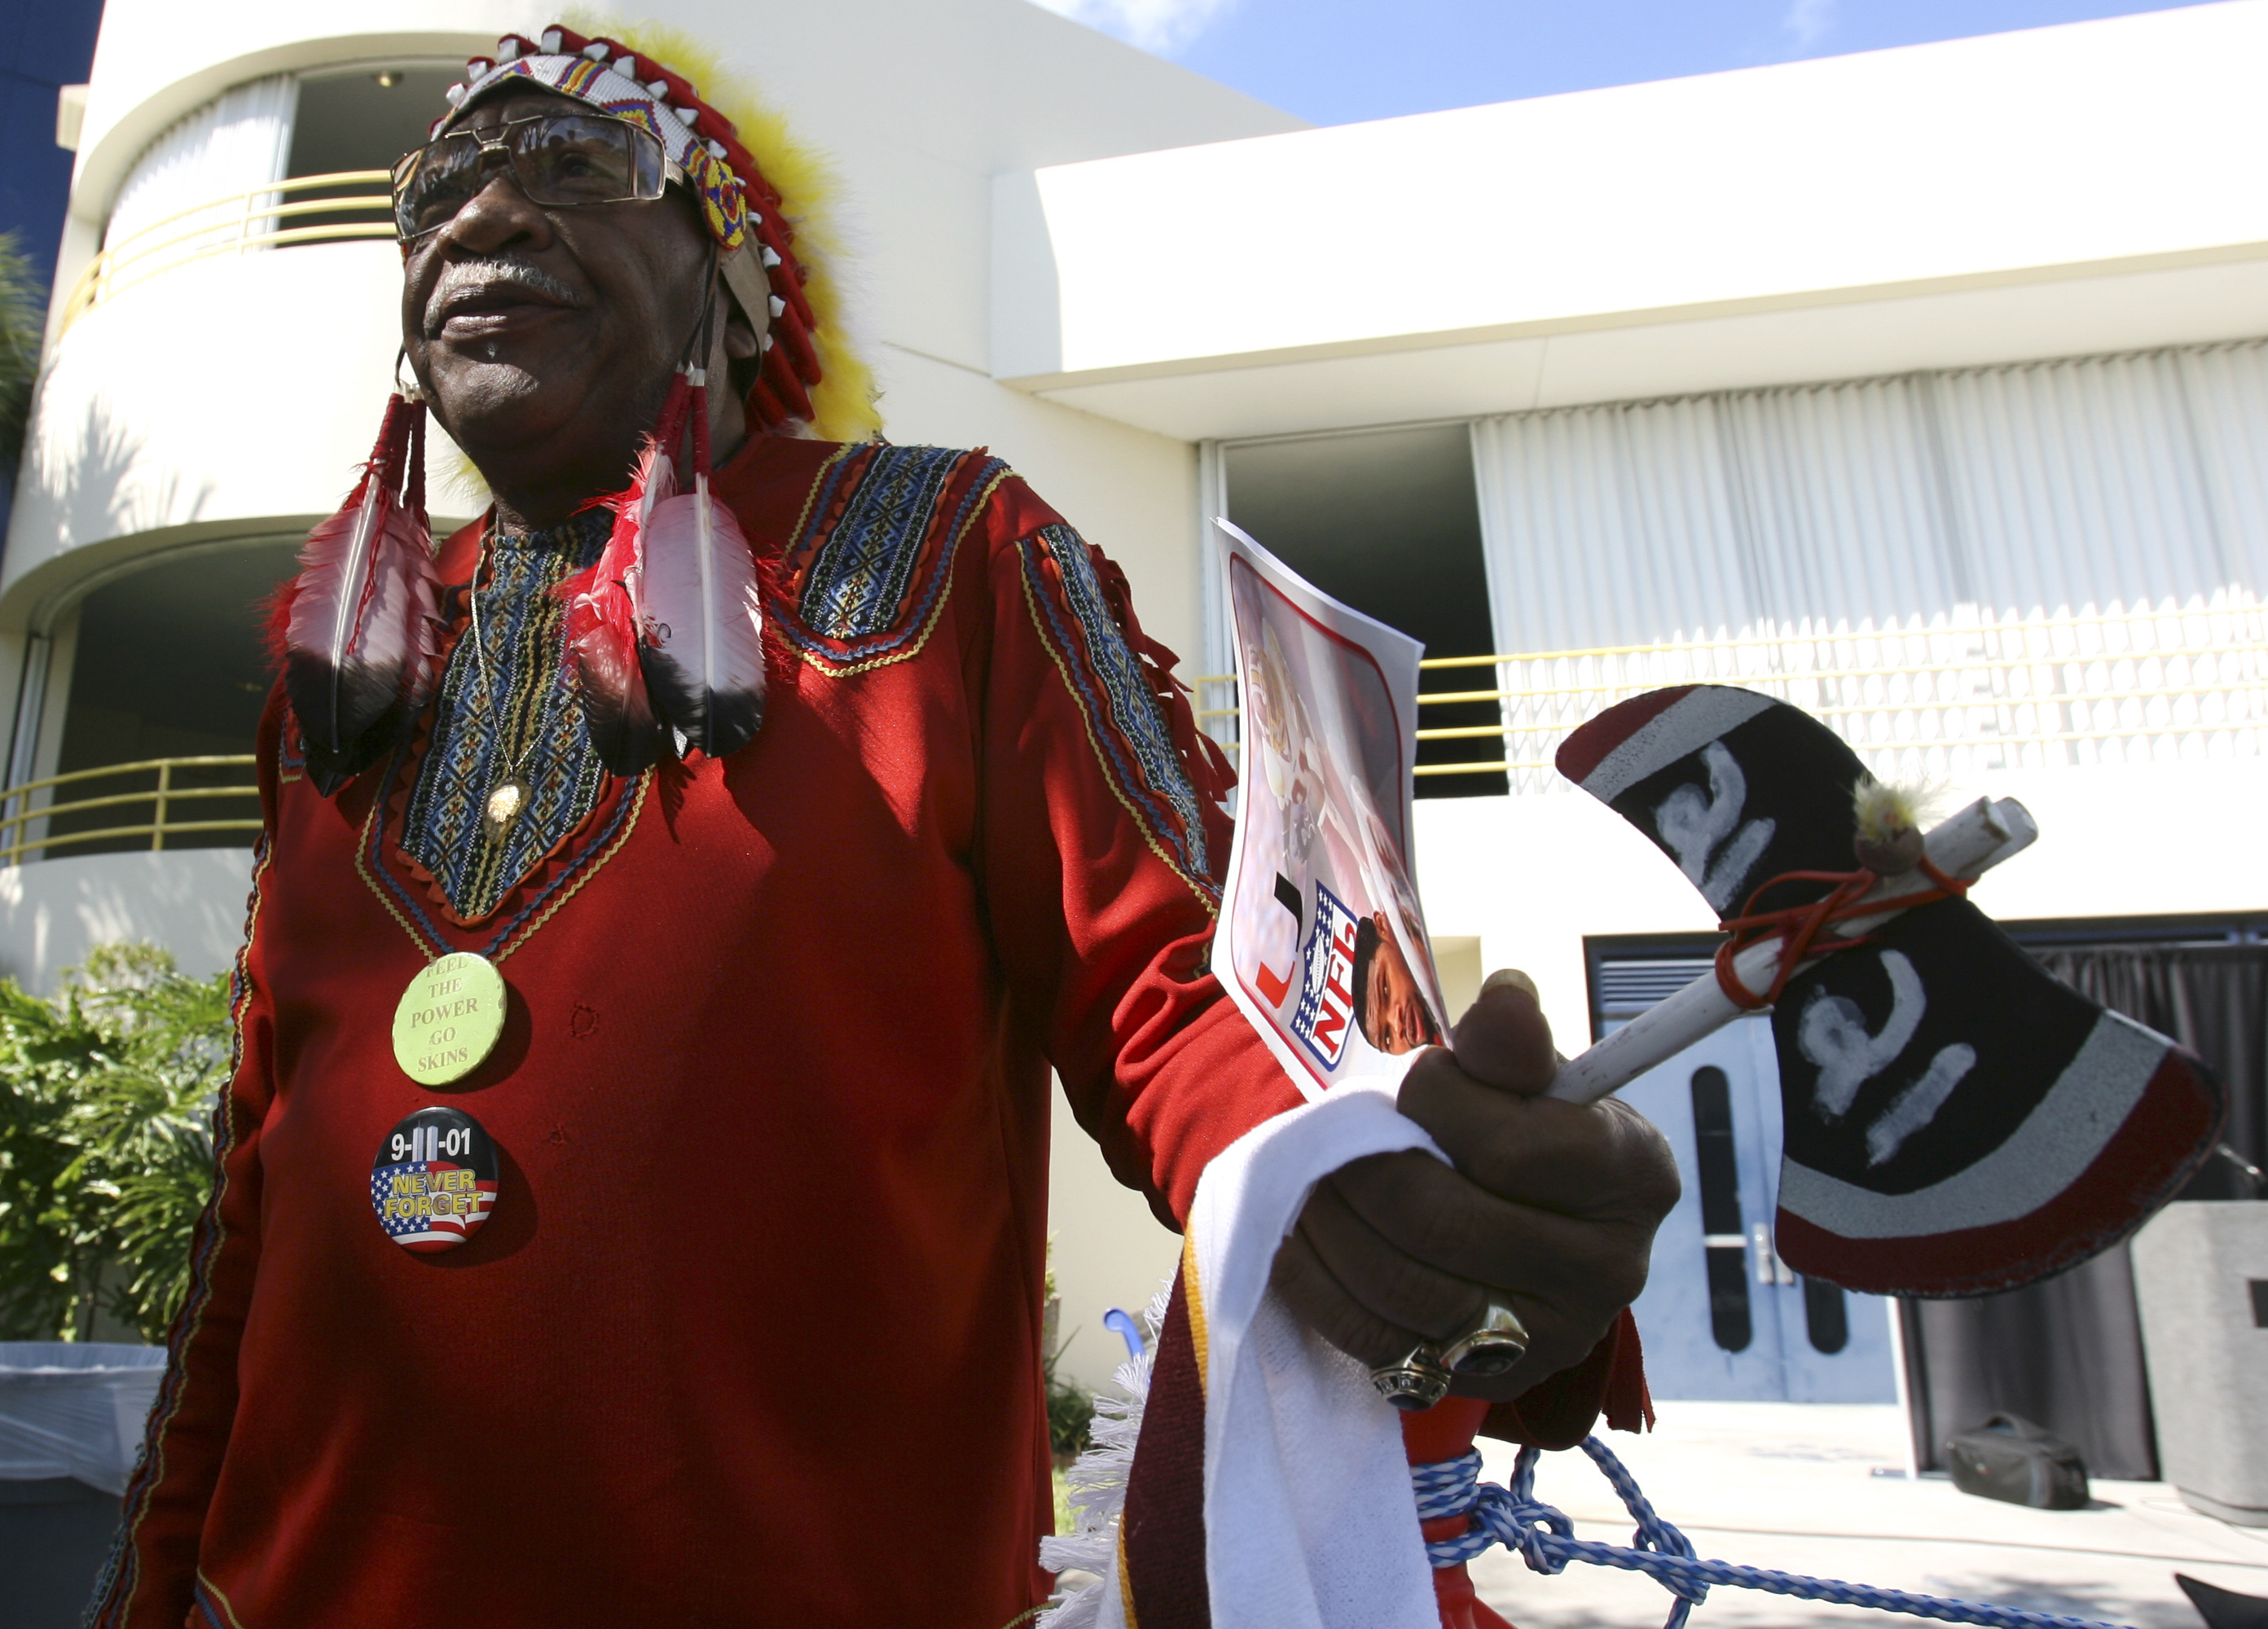 FILE - In this Dec. 3, 2007, file photo, Washington Redskins football fan Zema Williams stands outside of the funeral for Washington Redskins safety Sean Taylor at the Pharmed Arena at Florida International University in Miami. The team announced Tuesday,